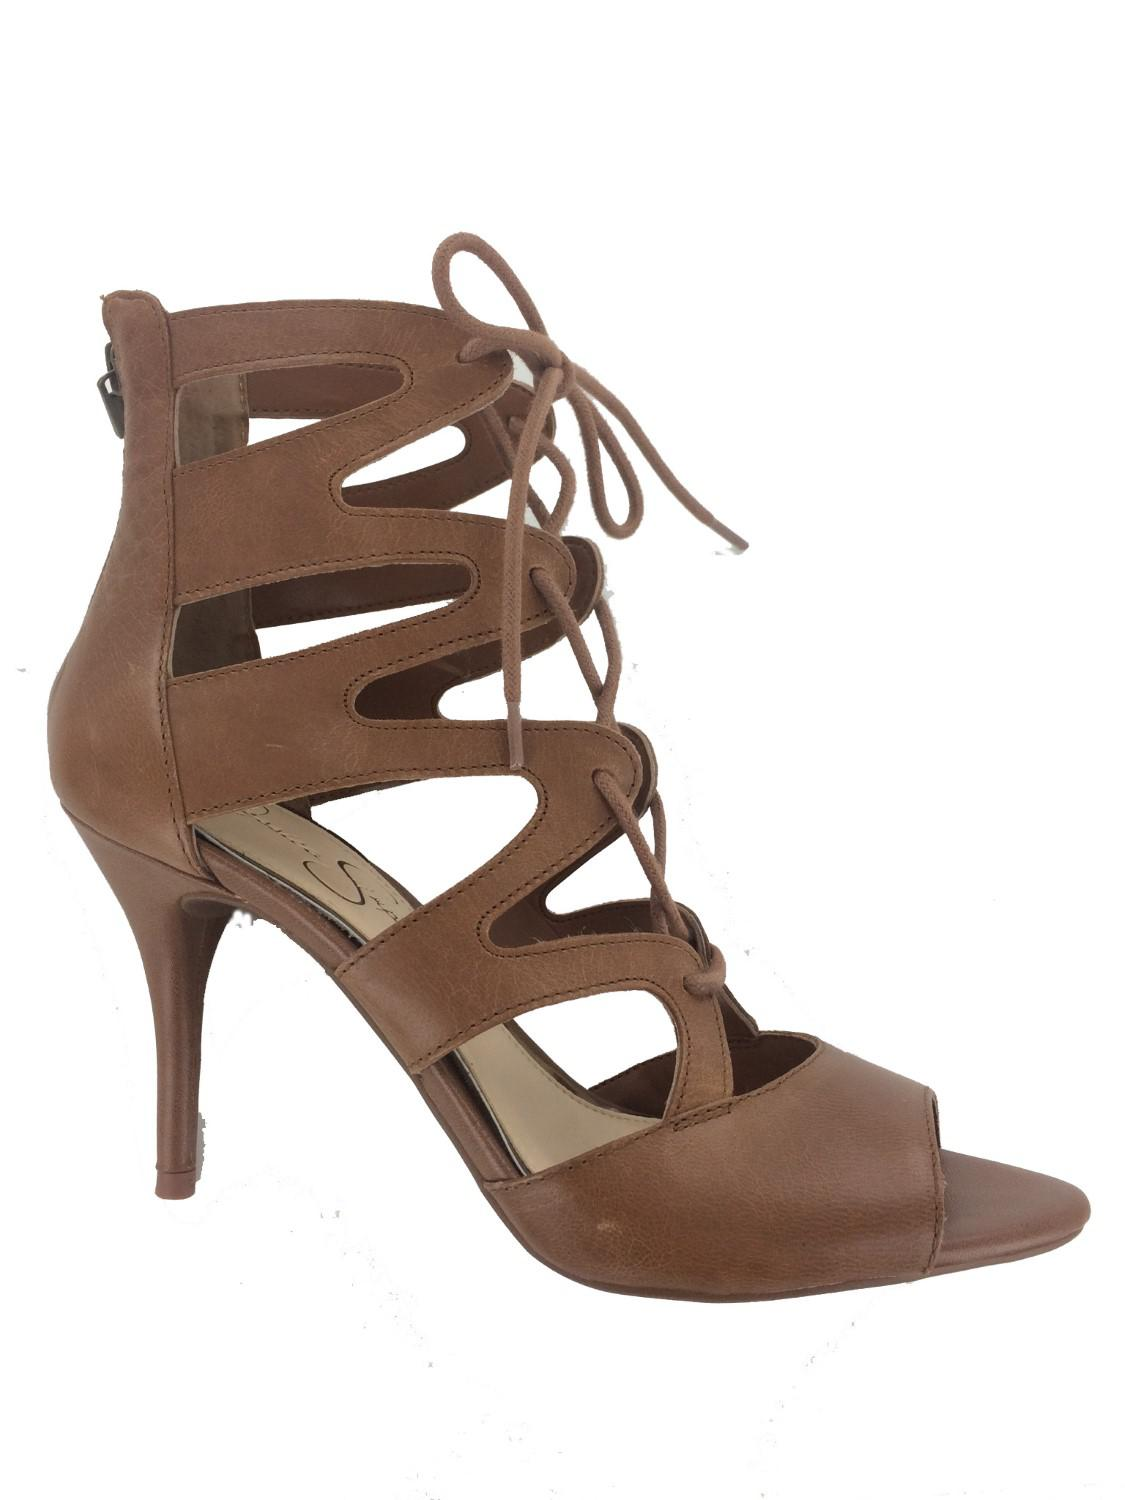 177f638ab20 Lyst - Jessica Simpson Mitta Heeled Sandal in Brown